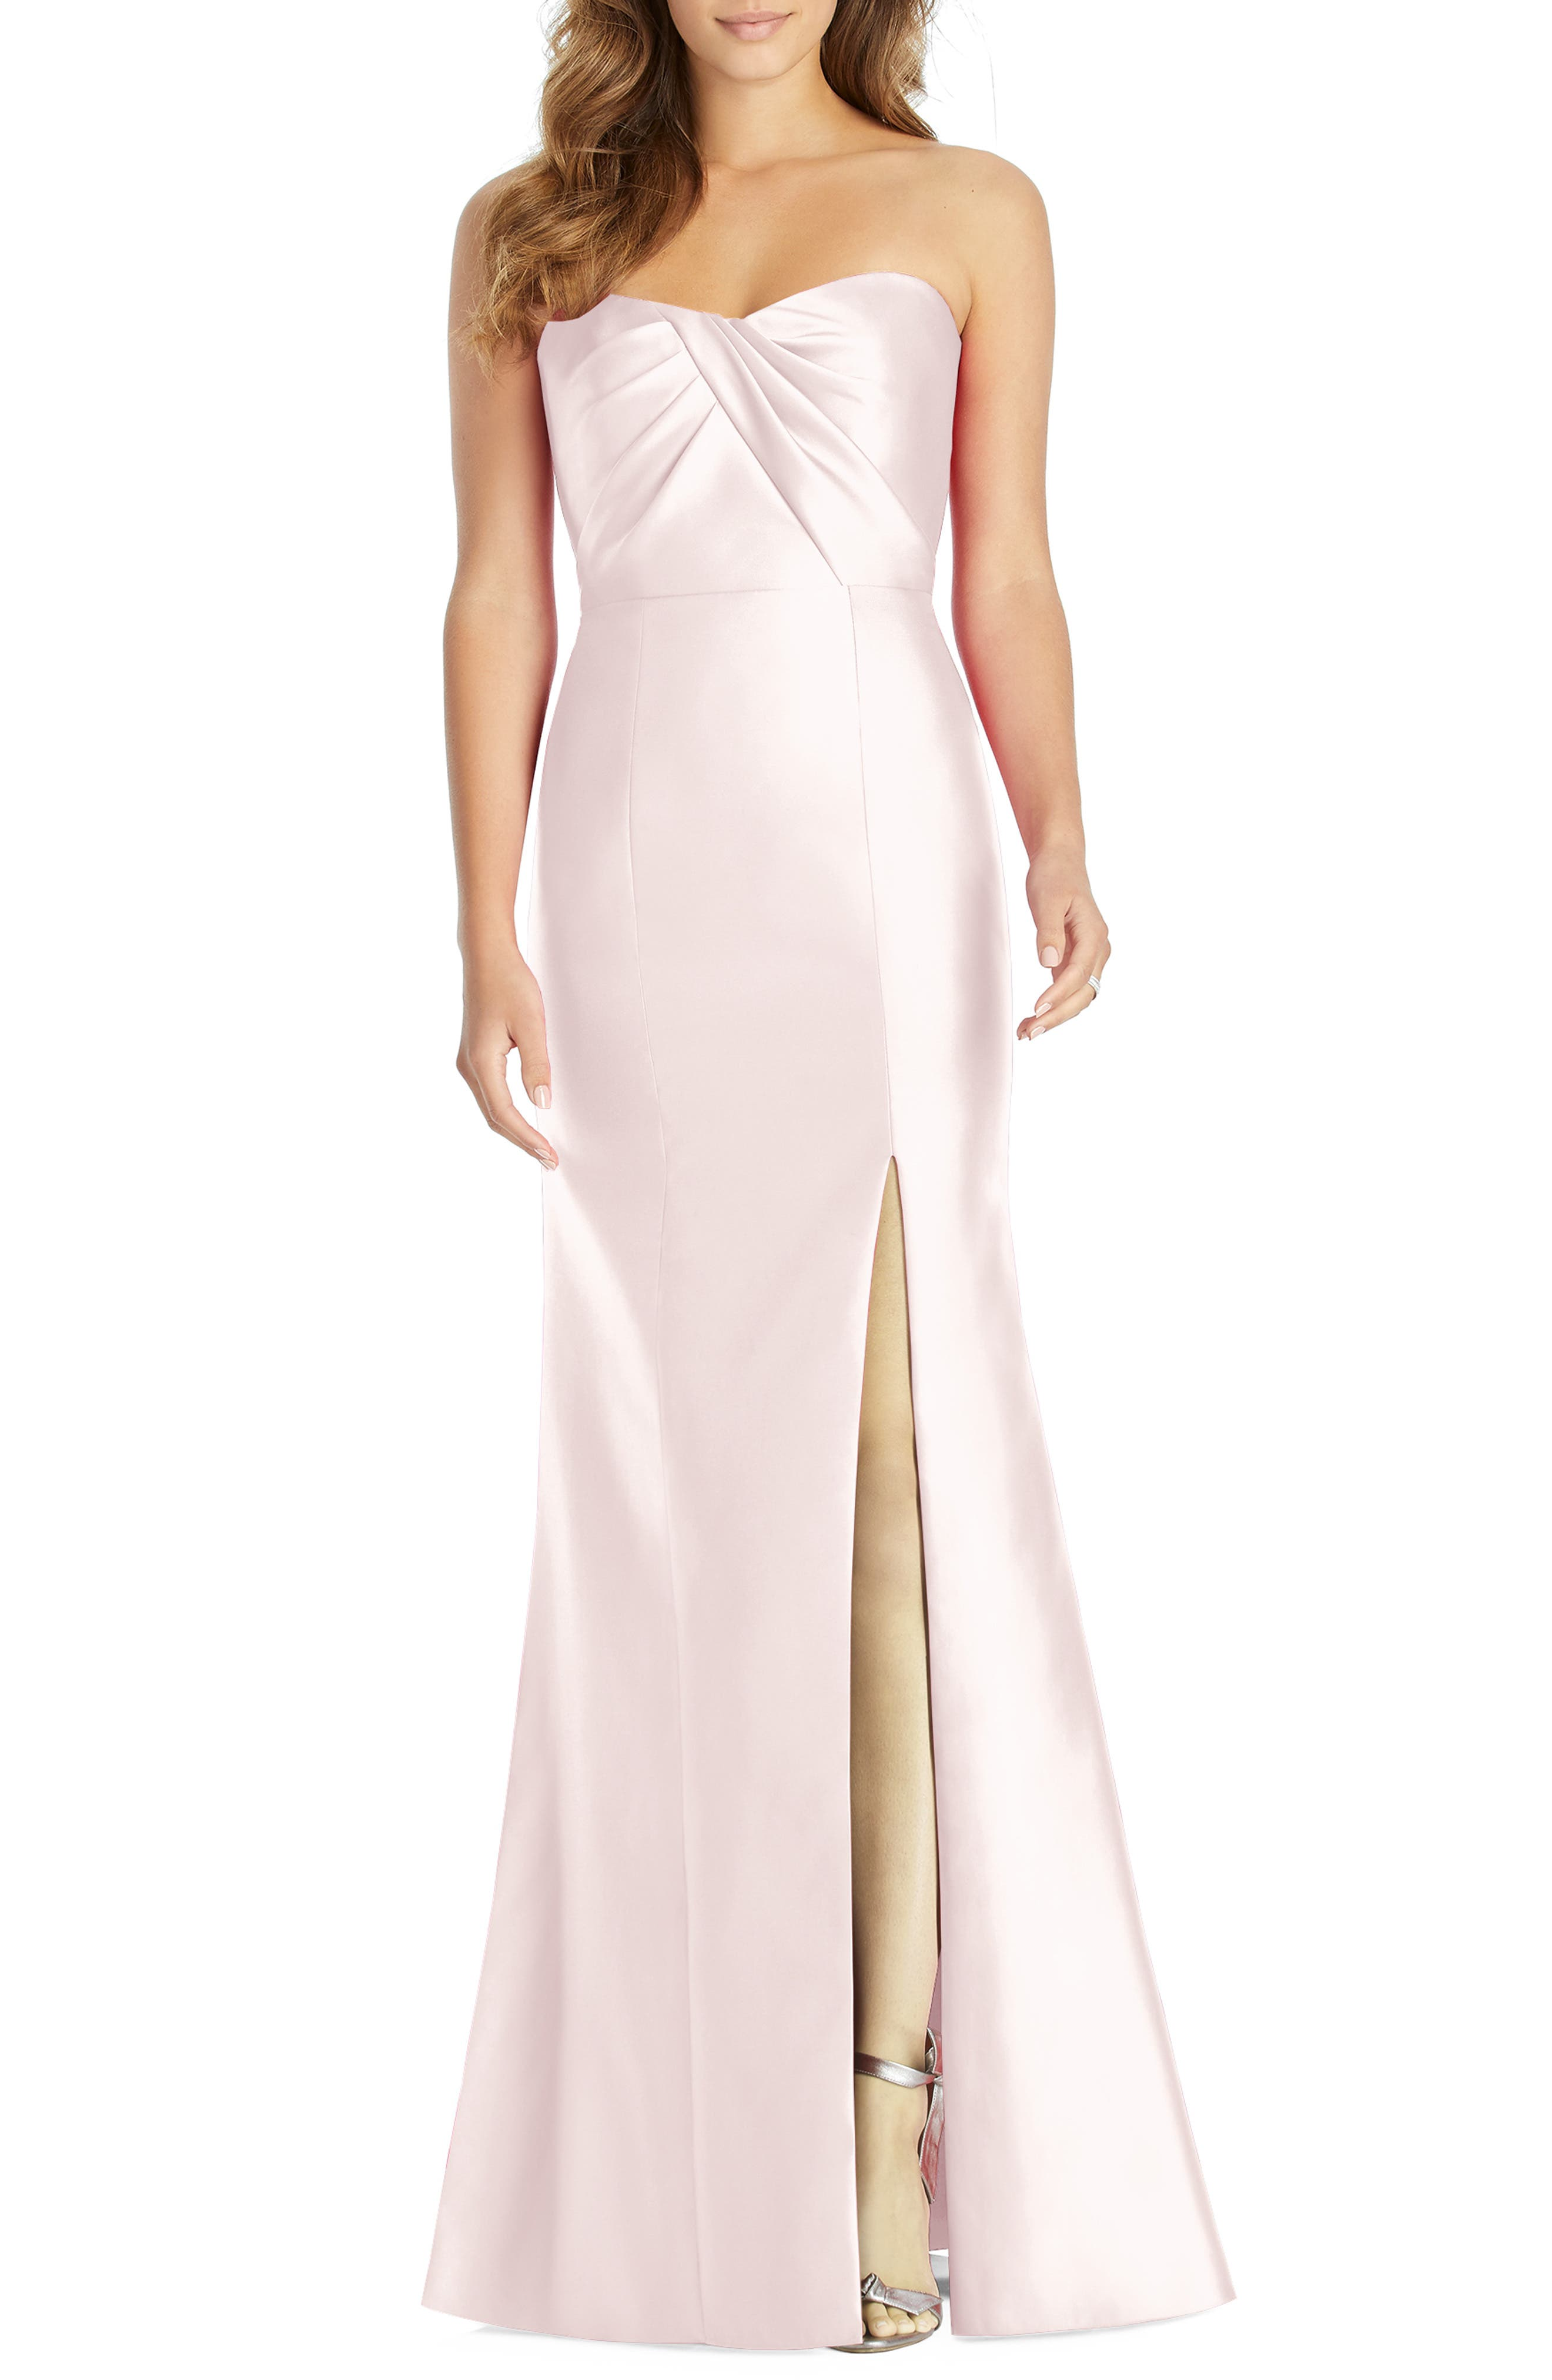 Alfred Sung Sateen Twill Strapless Sweetheart Neckline Gown, Pink